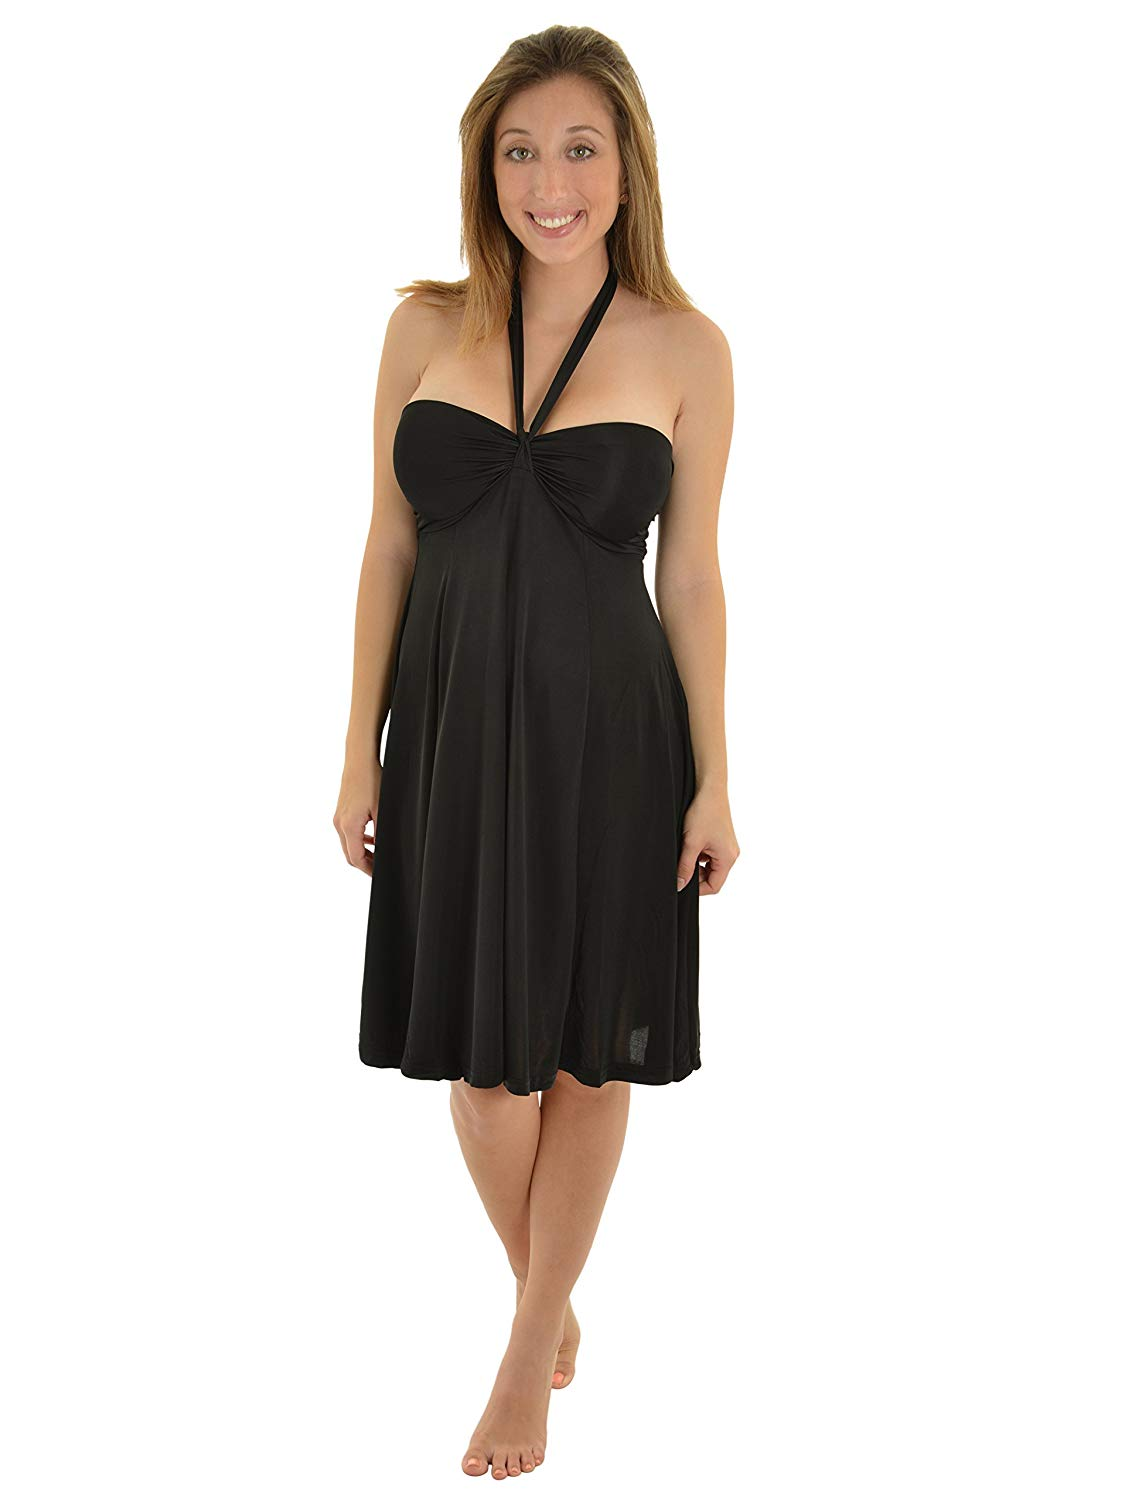 c90a09f41b Get Quotations · Womens Black Bandeau Dress with Convertible Straps Halter  Strapless